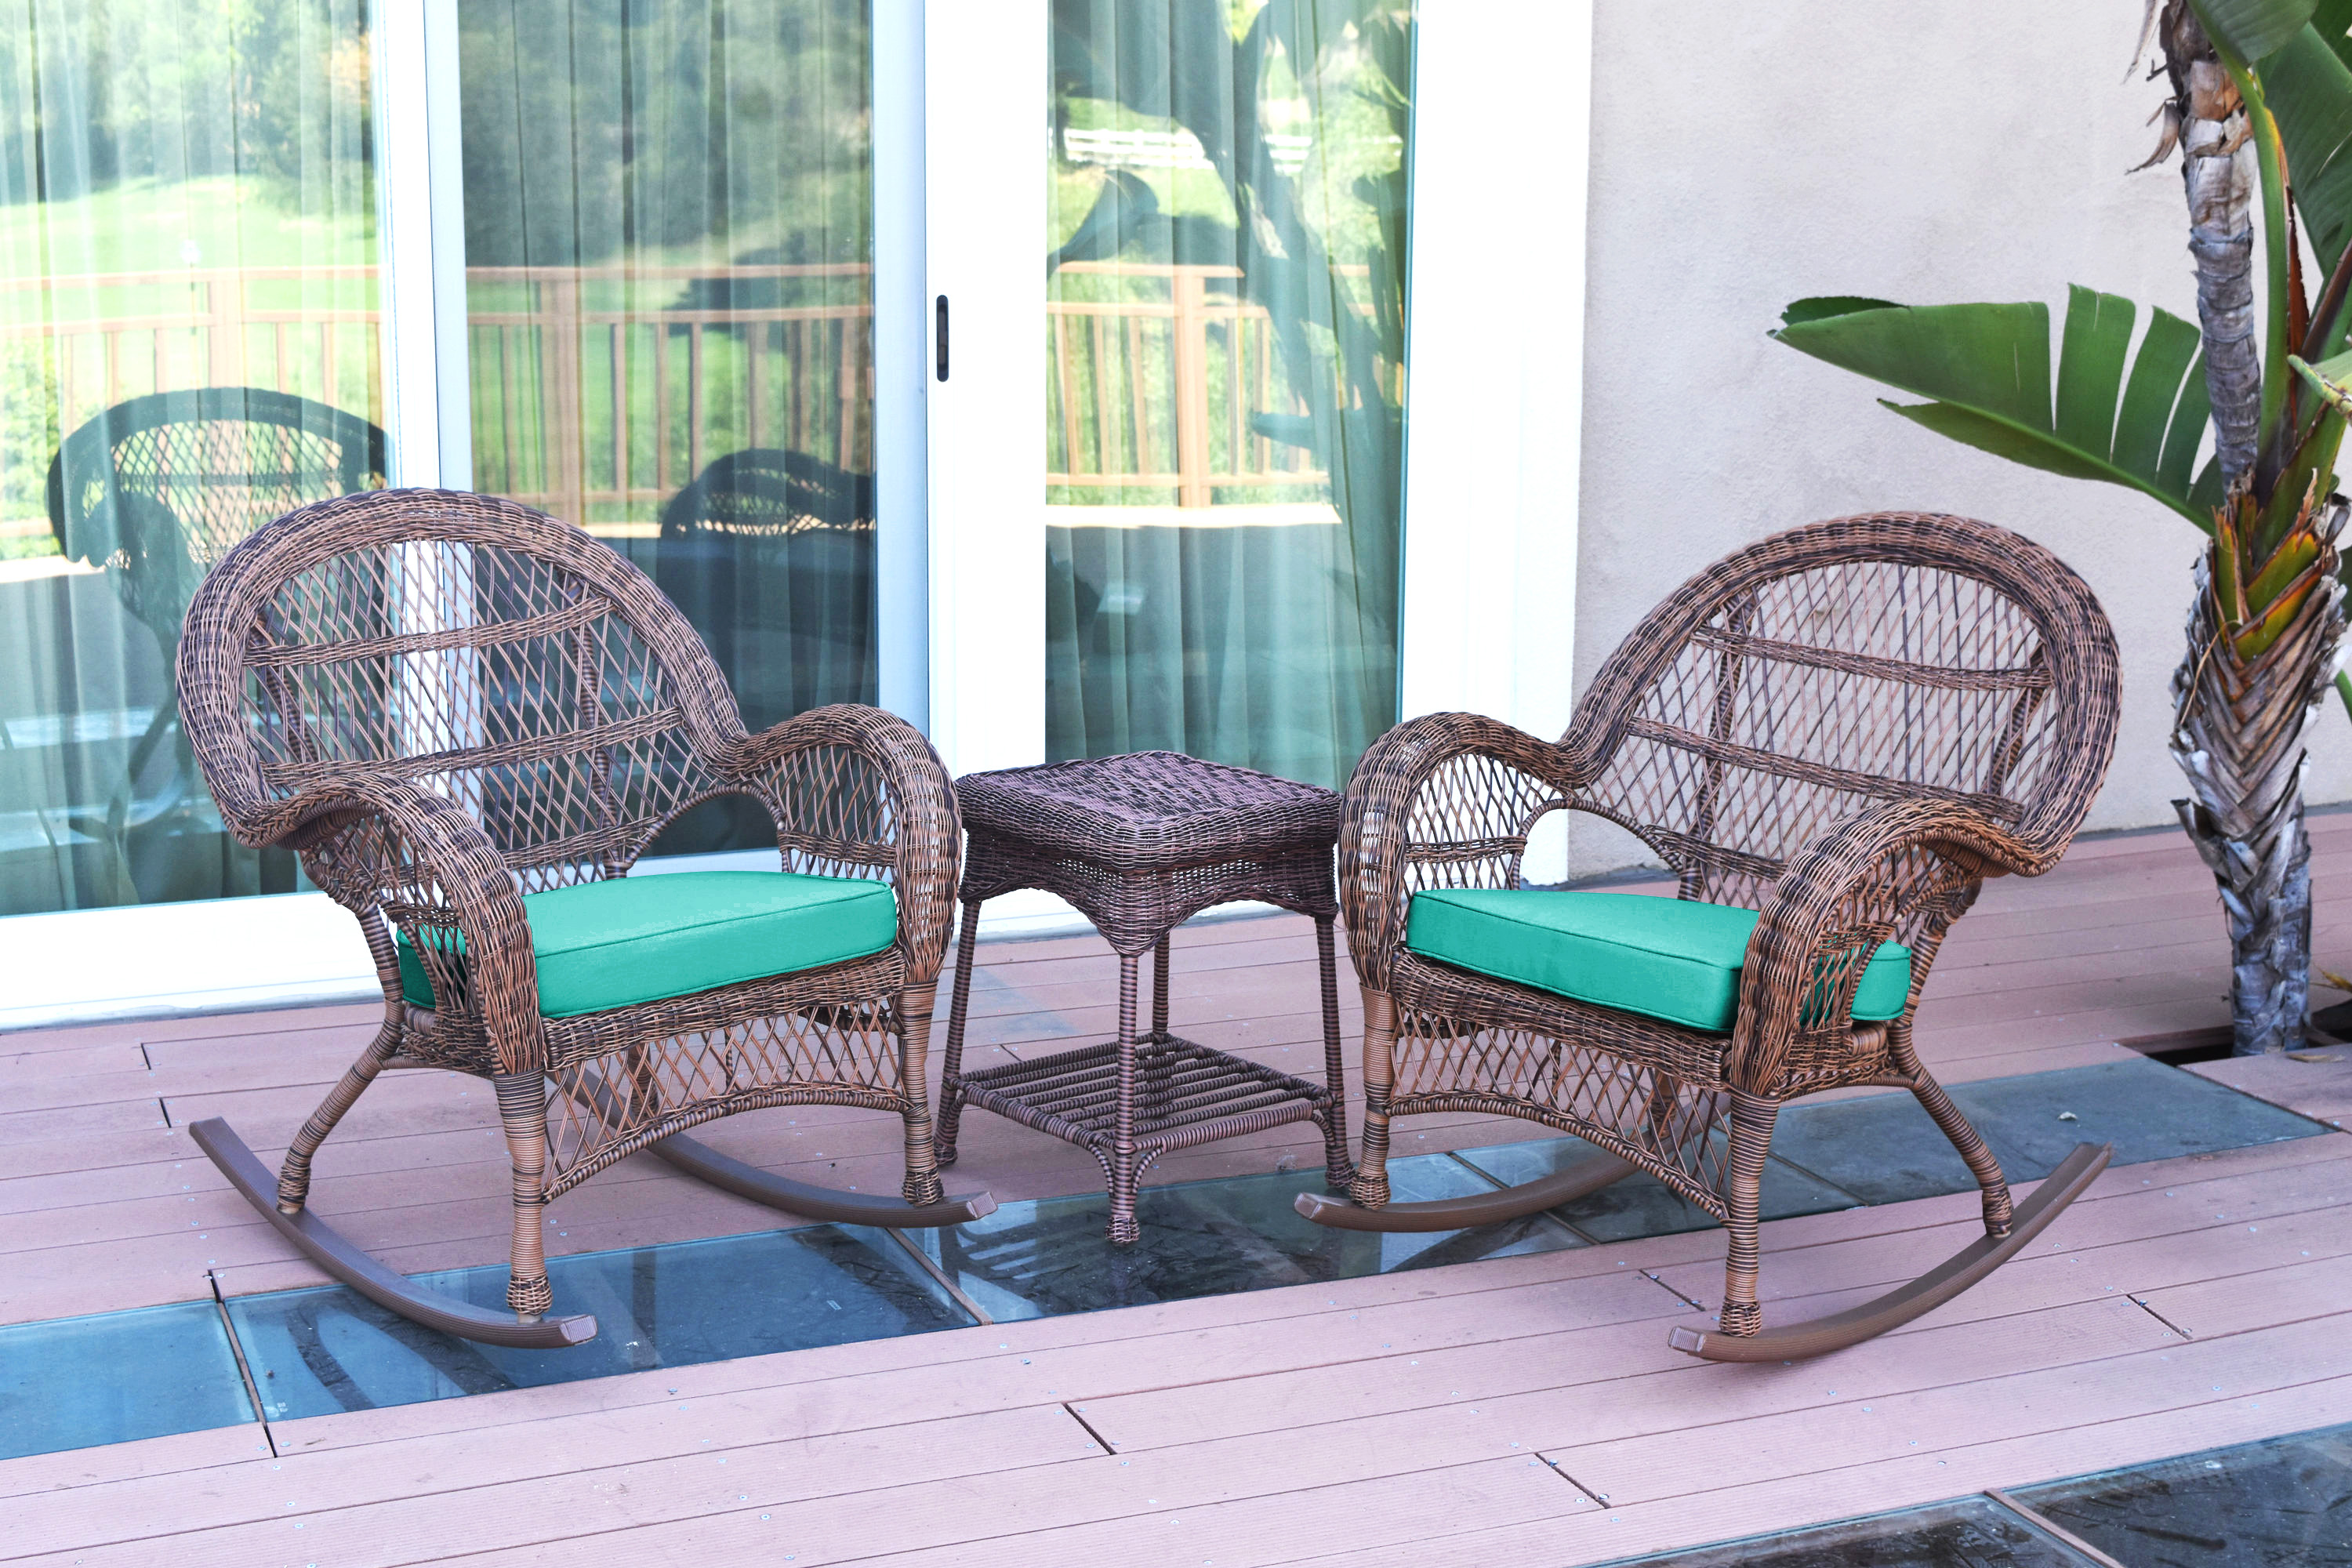 Black Jeco W00207R-D/_2-RCES029 3 Piece Rocker Wicker Chair Set with with Green Cushion